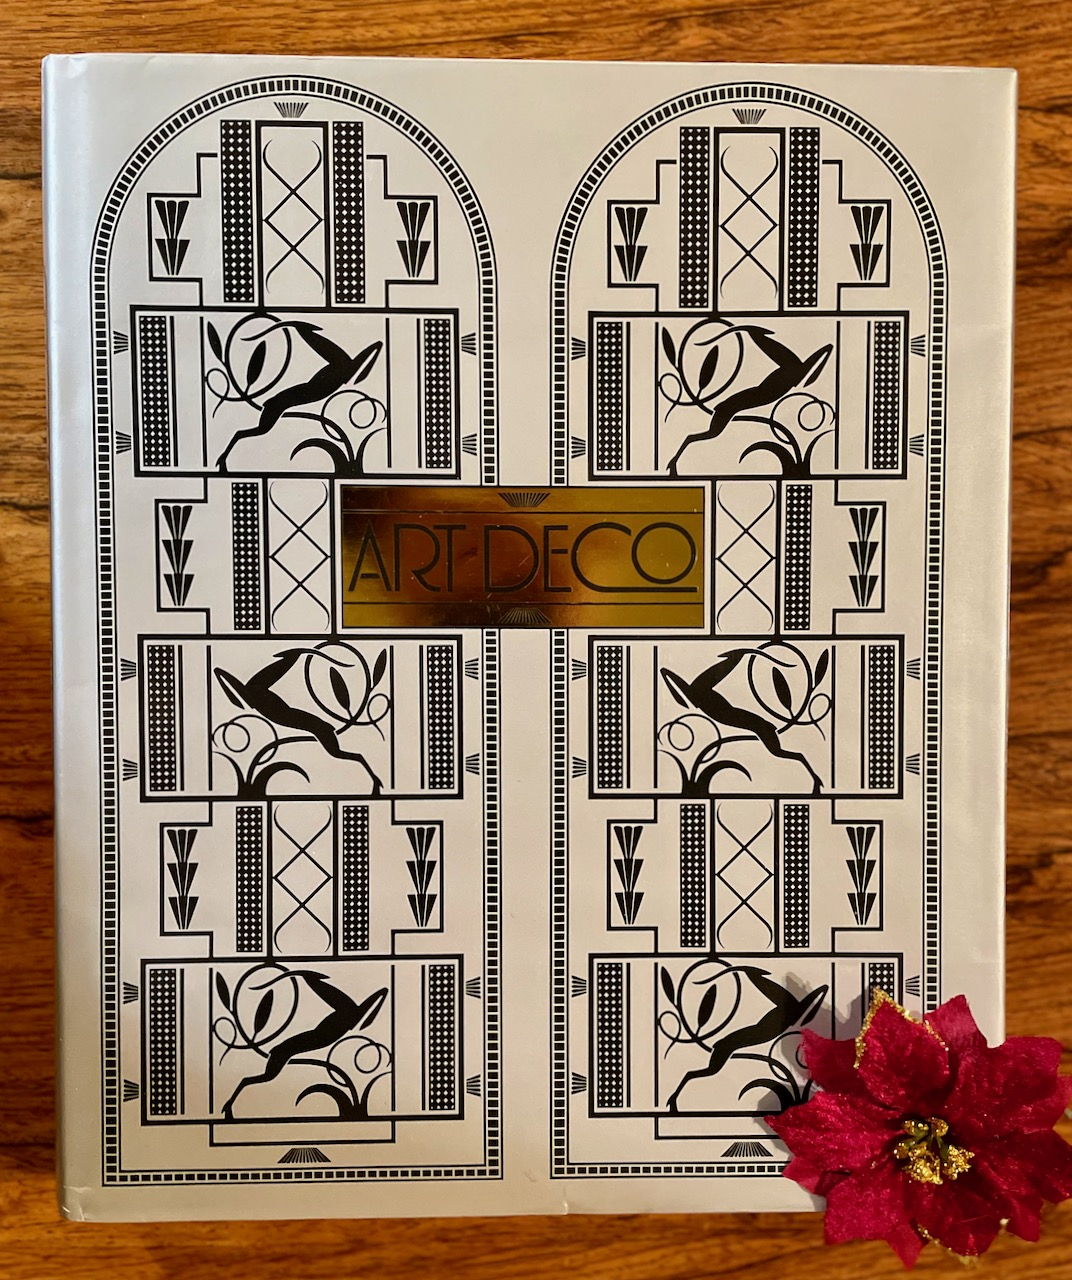 Art Deco by Arwas